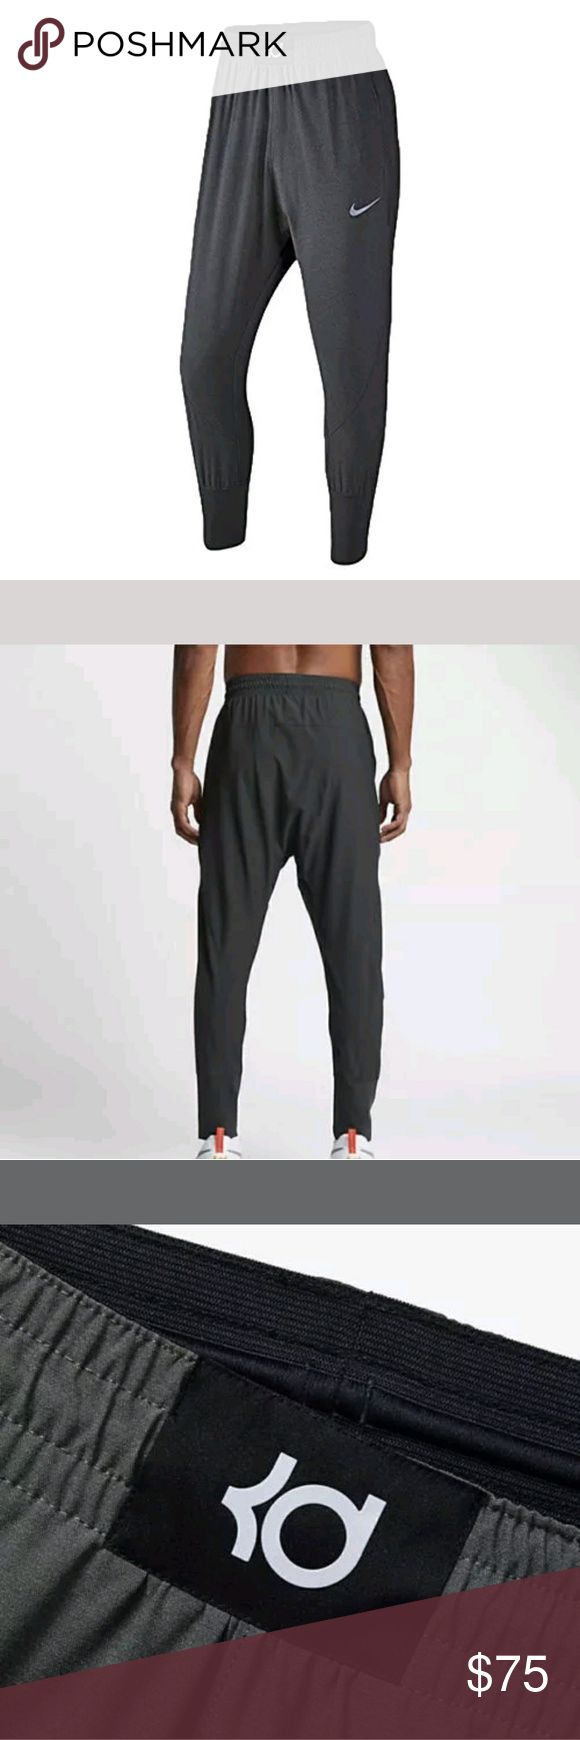 MENS NIKE FLEX HYPER ELITE KD BASKETBALL PANTS The Nike Flex Hyper Elite KD Men's Basketball Pantsfeature durable, stretch-woven fabric in a relaxed cut that lets you move naturally, on or off the court.  BENEFITS  · Nike Flex fabric promotes natural range of motion  · Dri-FIT fabric helps keep you dry and comfortable  · Relaxedfit tapers to the ankles for a tailored feel  · Elastic waist with drawcord for a snug, comfortable fit  · Perforated side and inseam panels enhance airflow…